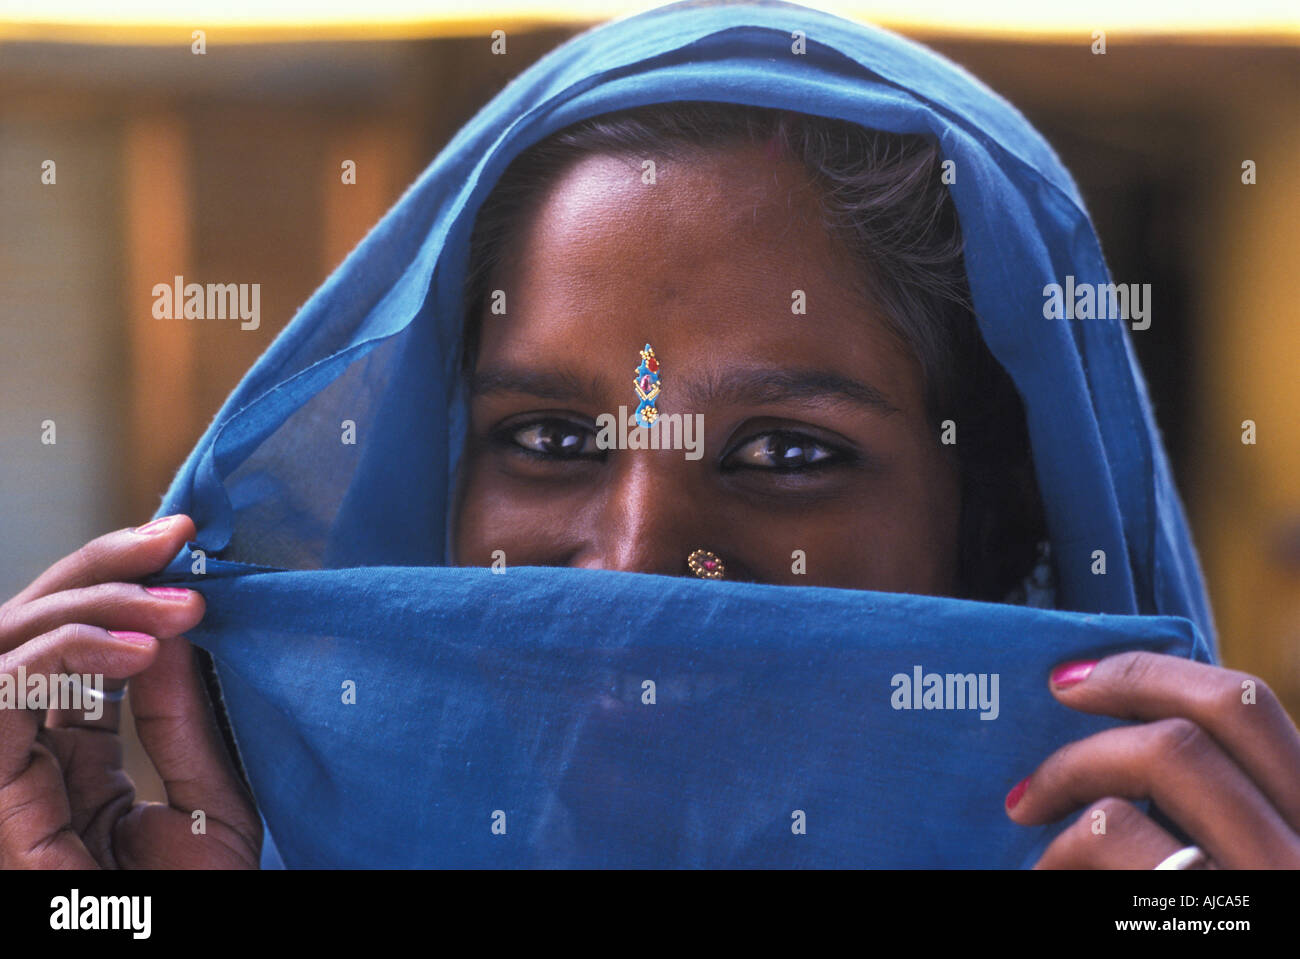 Friendly Hindu woman from Uttar Pradesh with blue headcloth veiling her smile India Photo By Jamie Marshall - Stock Image